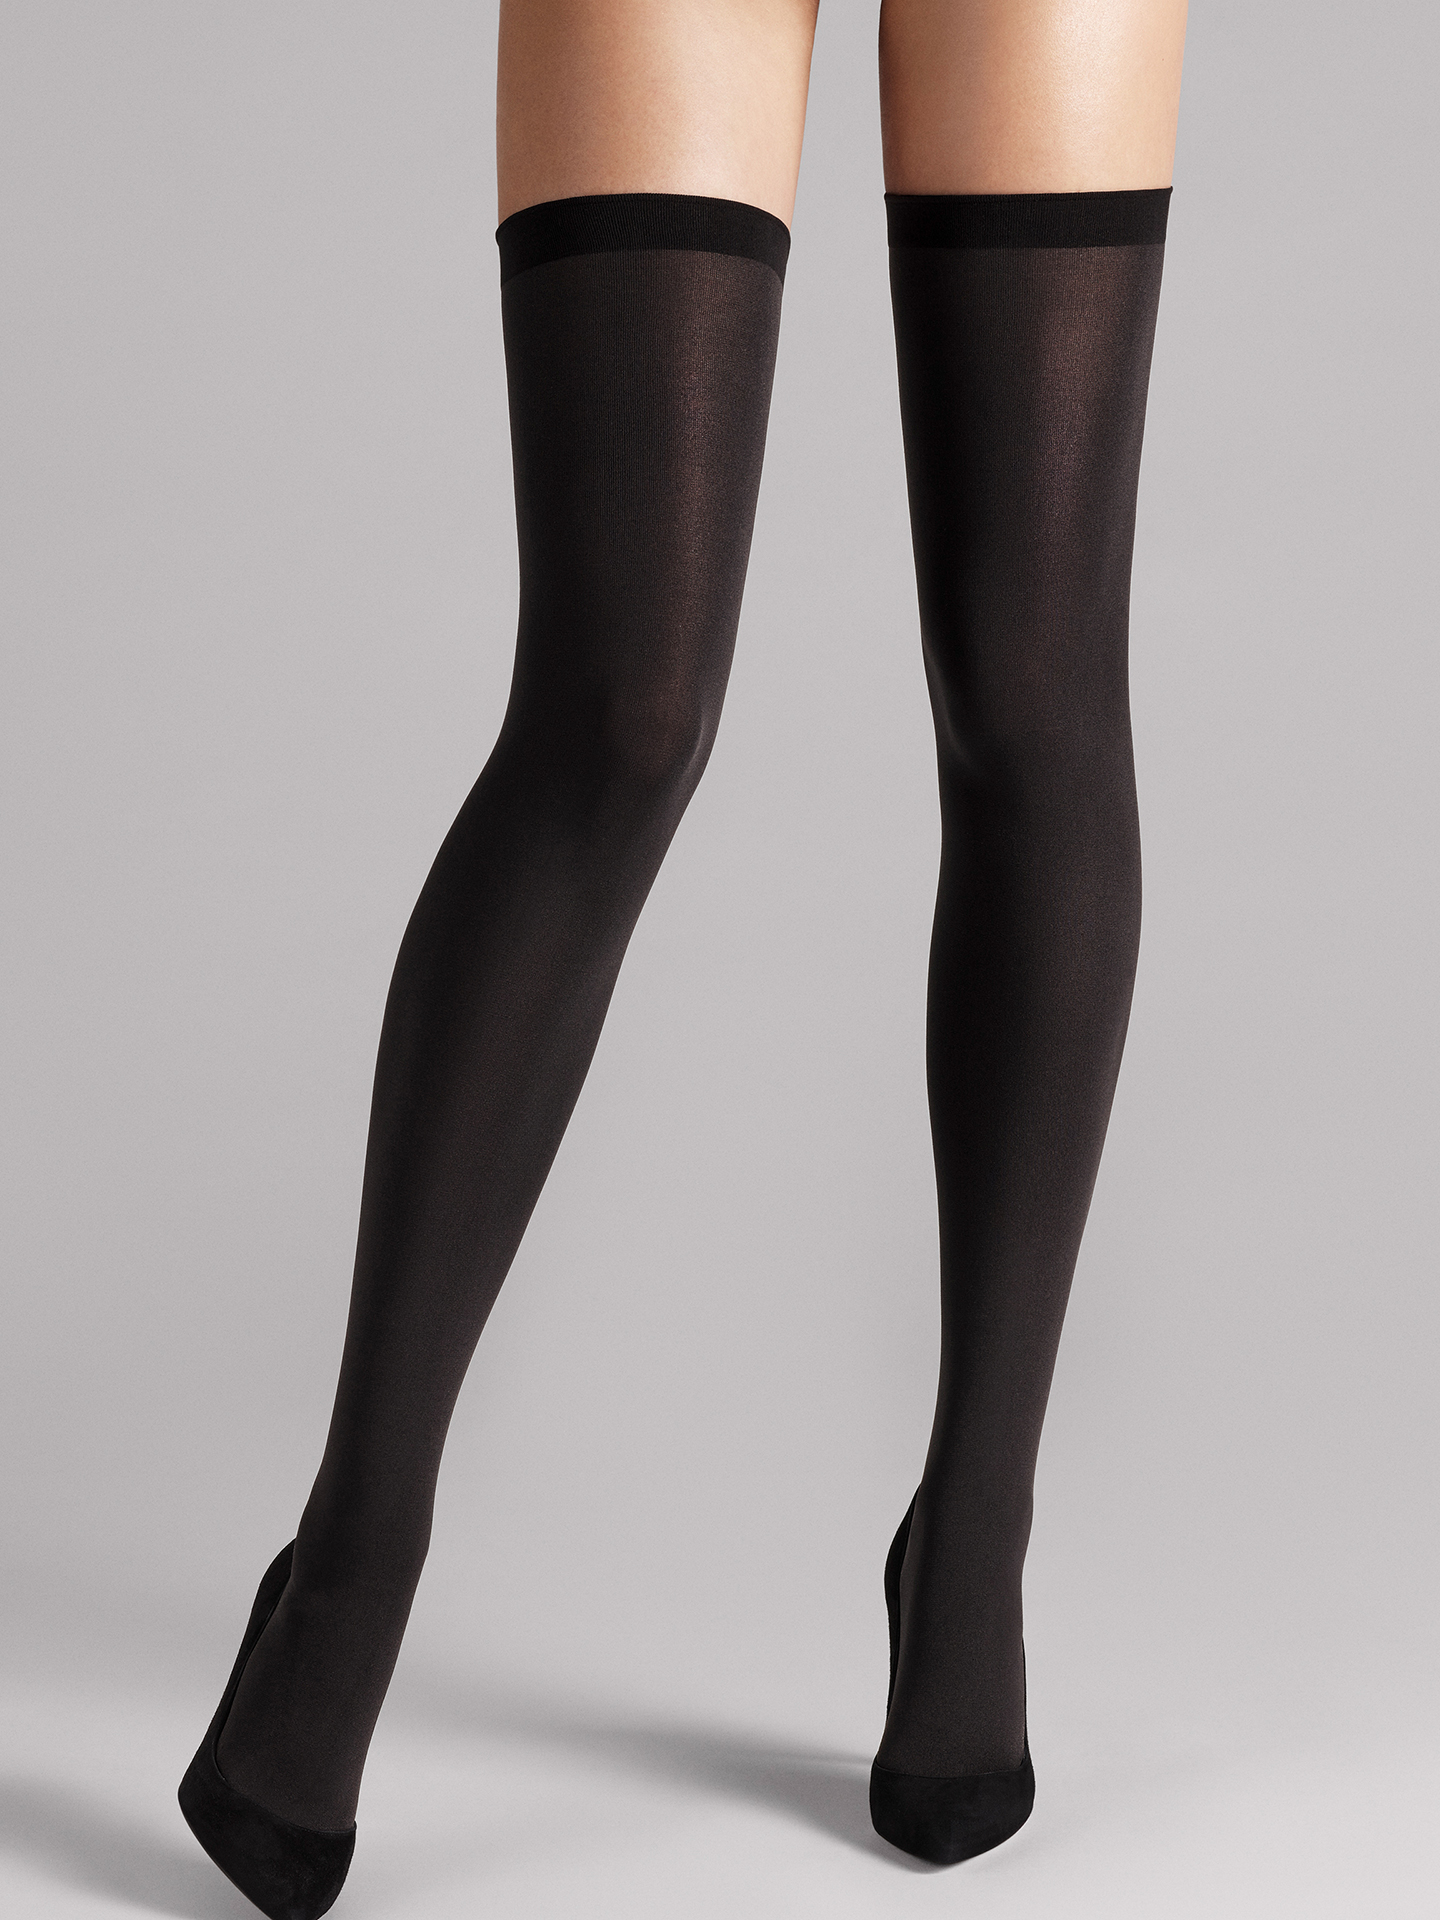 Wolford Apparel & Accessories > Clothing > Autoreggenti & Calze Fatal 80 seamless Stay-Up